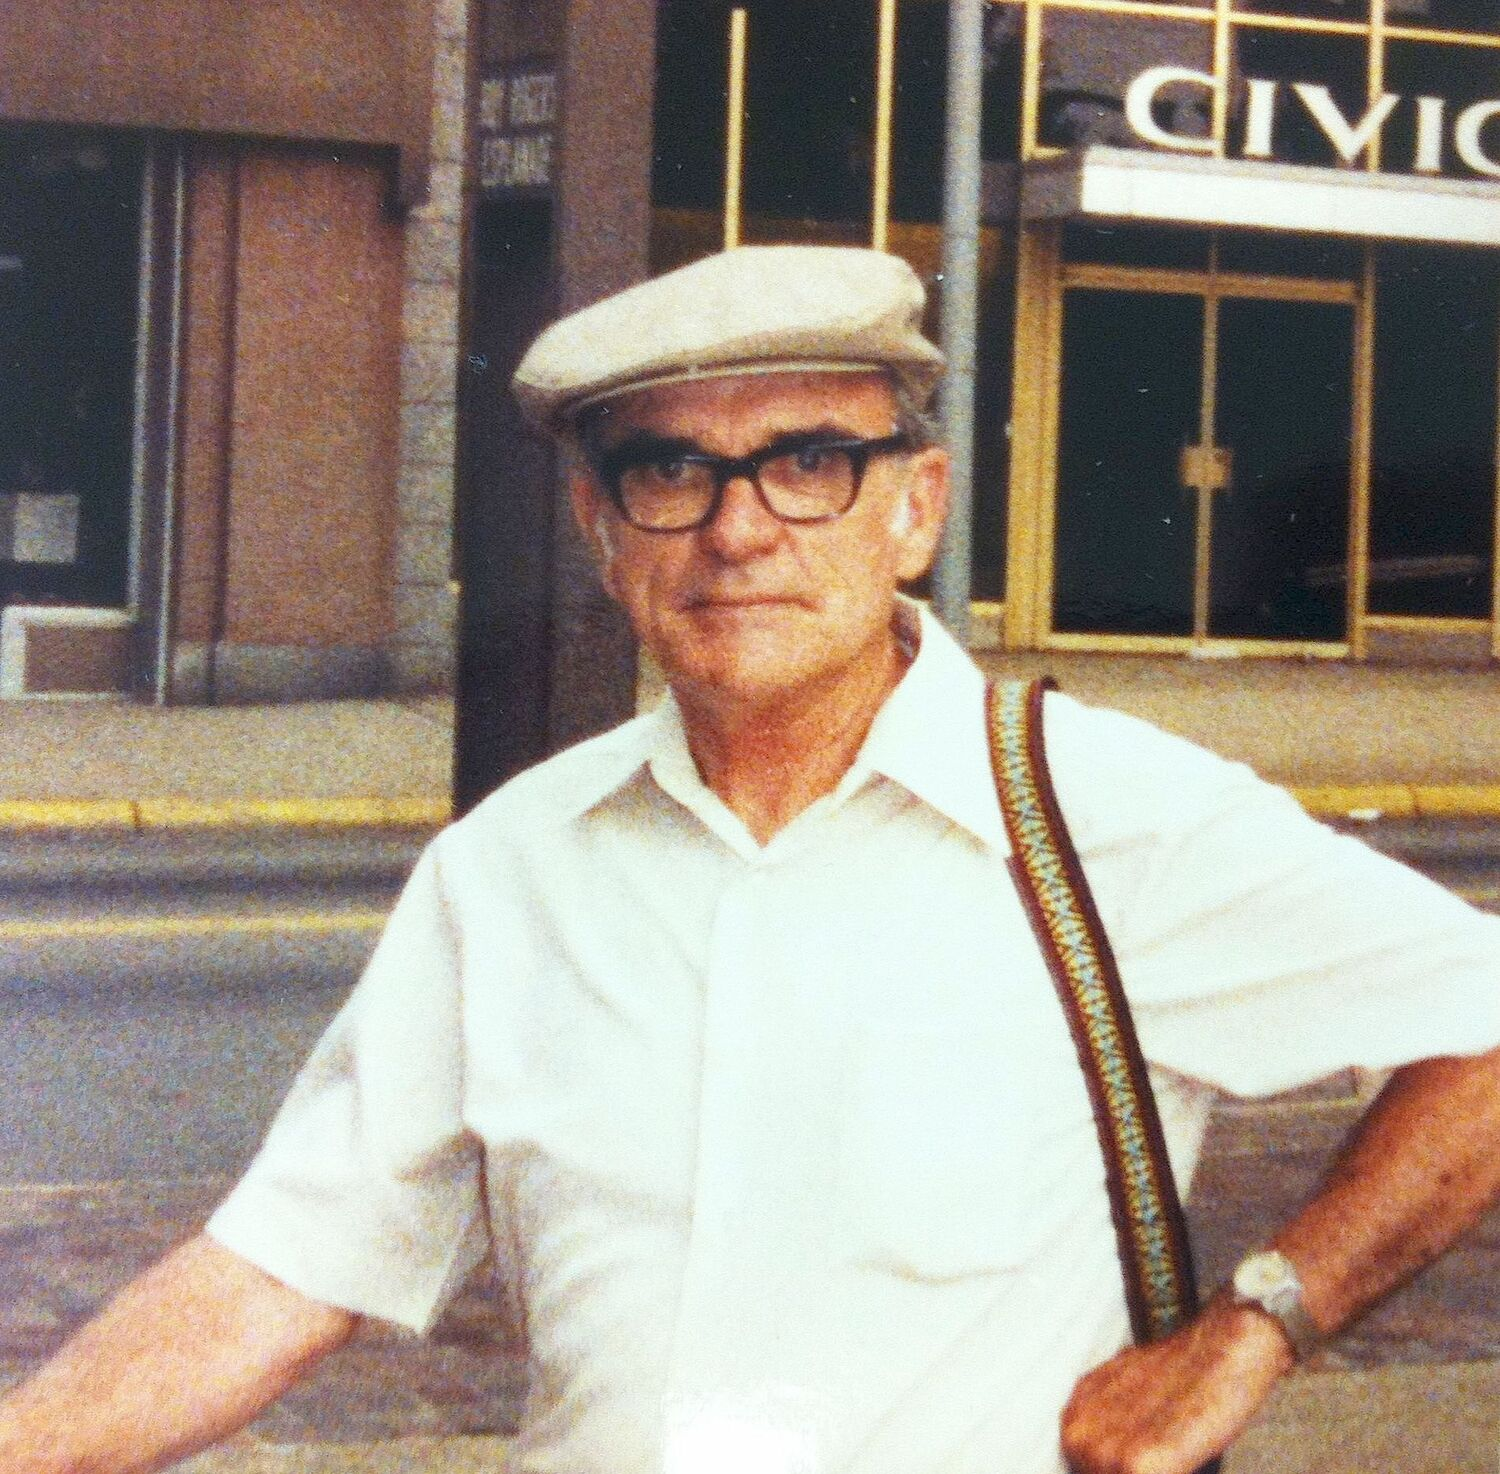 Carl Ackerman with camera strapped over his shoulder, standing on the Esplanade, at the intersection of Chillicothe and Gallia Streets, Portsmouth, Ohio, c. 1980.